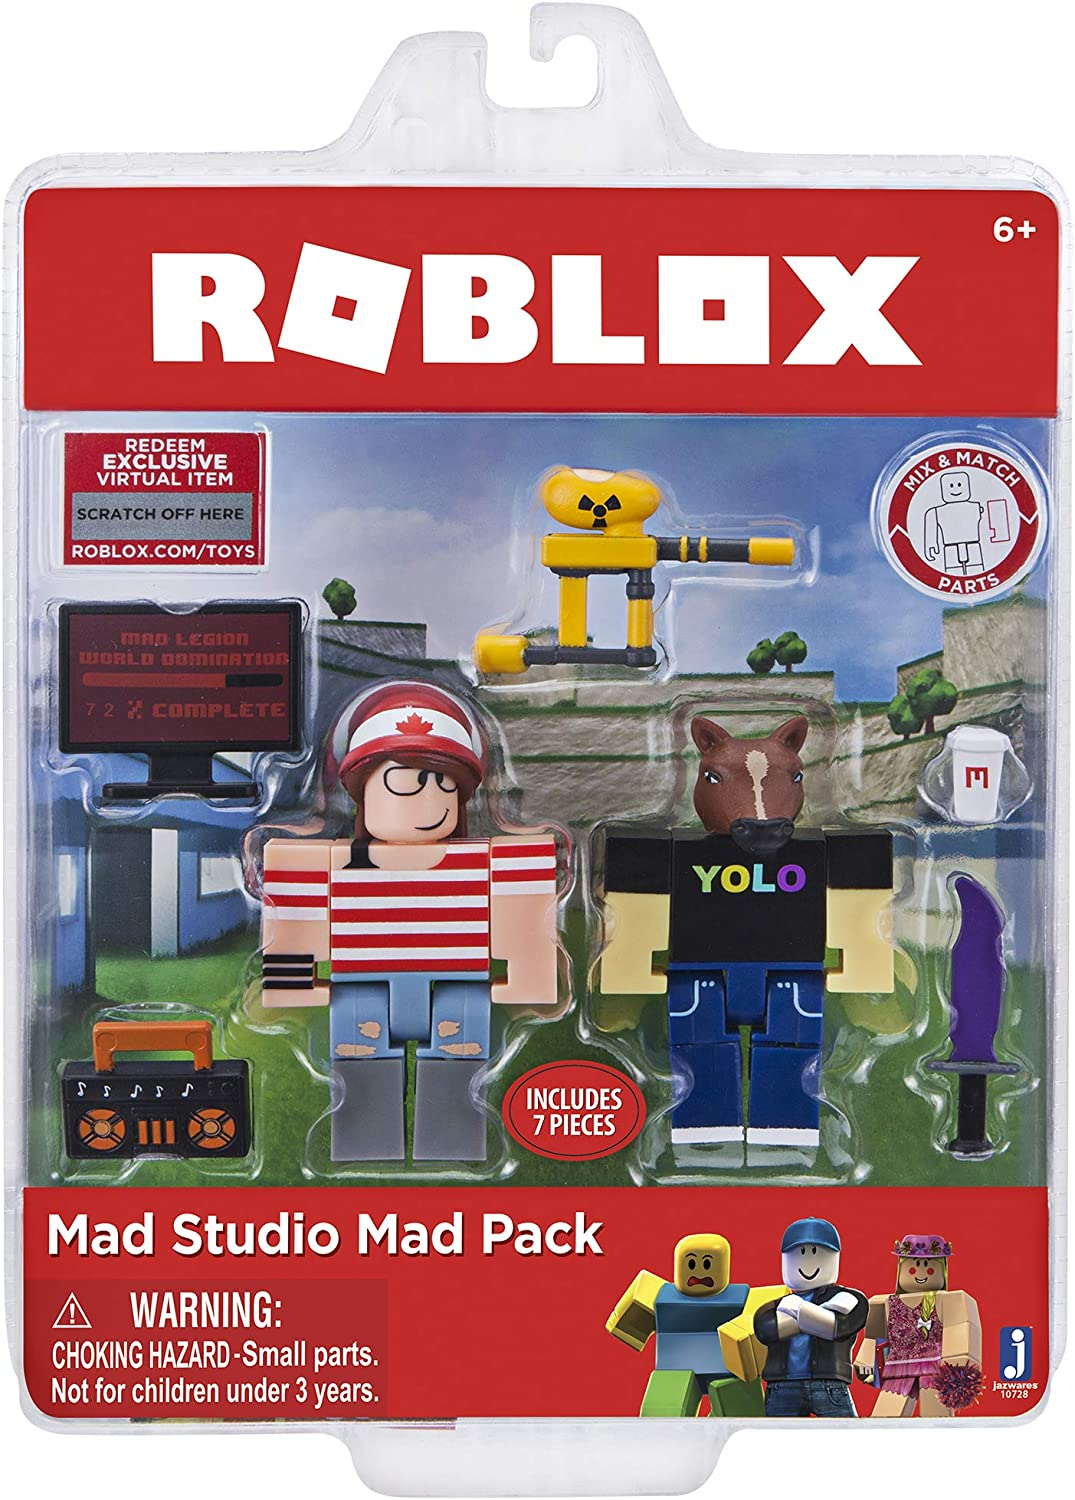 Roblox Character Mad Amazon Com Roblox Action Collection Mad Studio Mad Pack Game Pack Includes Exclusive Virtual Item Toys Games